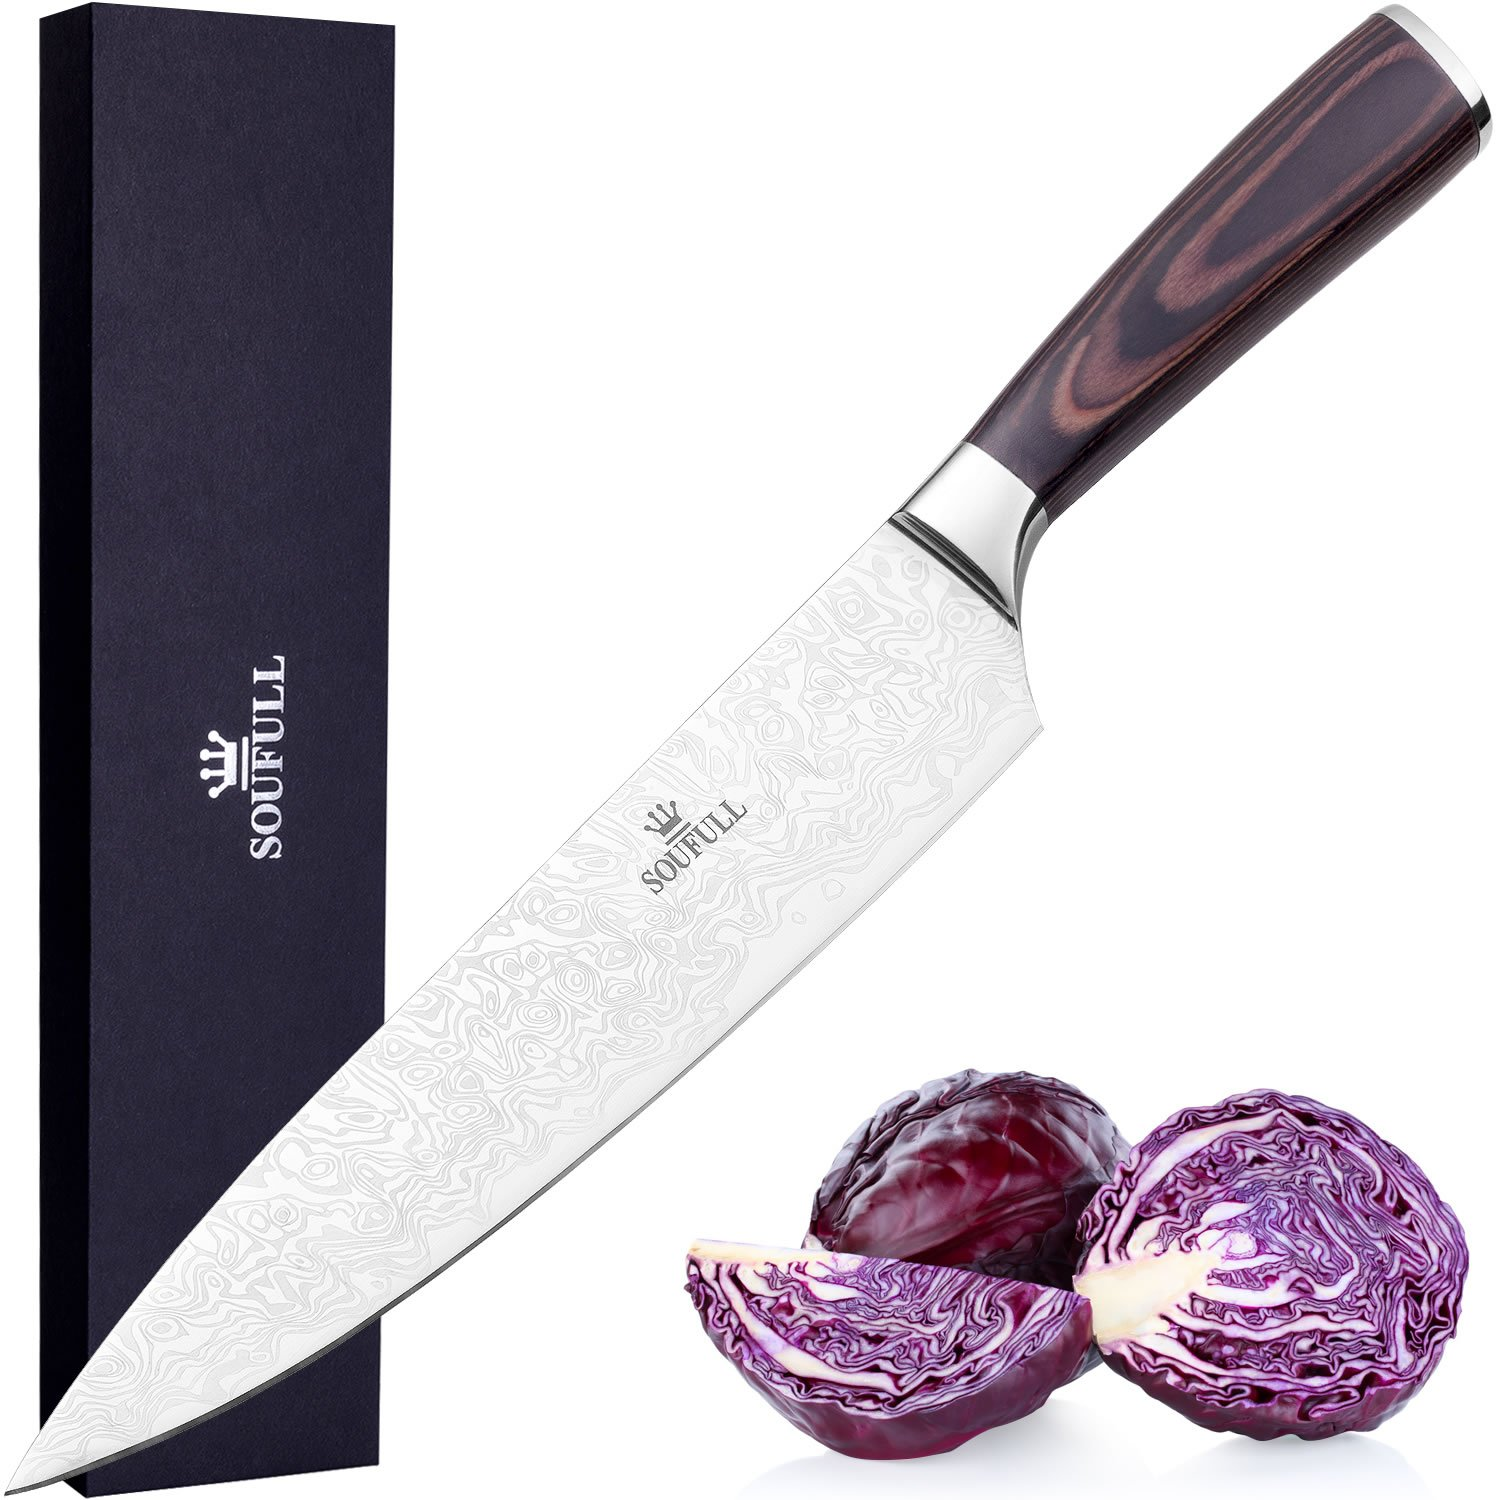 Japanese Chef Knife, Soufull 8 inch Sturdy Stainless Steel Kitchen Knife with Razor Sharp Blade and Balanced Ergonomic Pakka Wood Handle with Gift Box